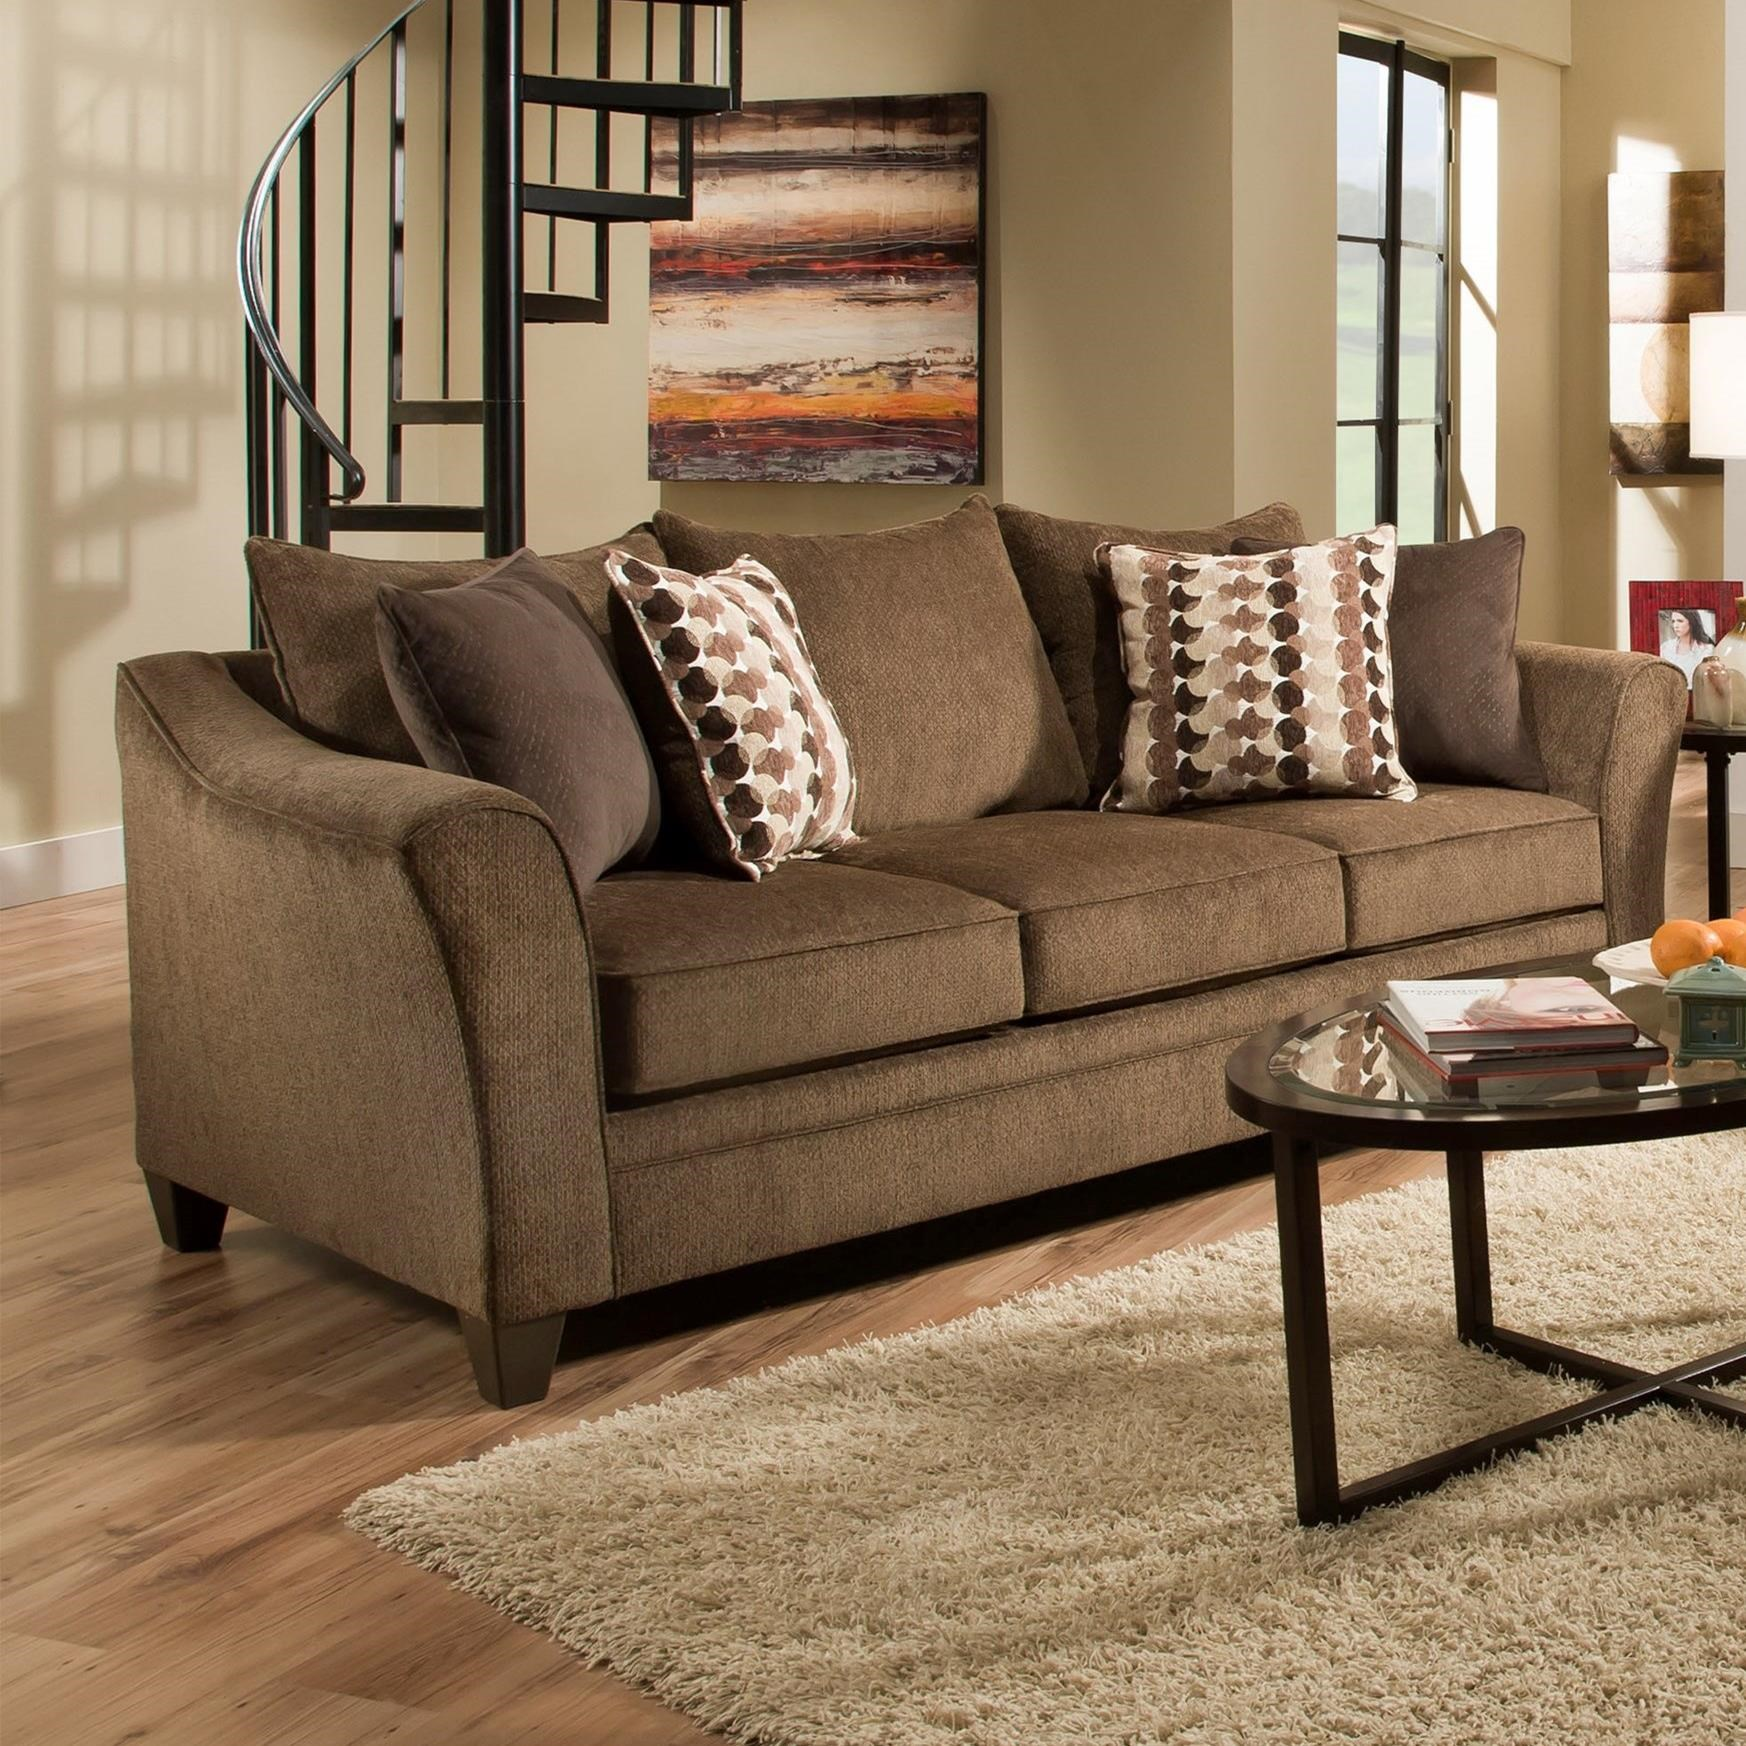 United Furniture Industries 6485 Transitional Queen Slepper Sofa - Item Number: 6485SleeperSofa-AlbanyChestnut